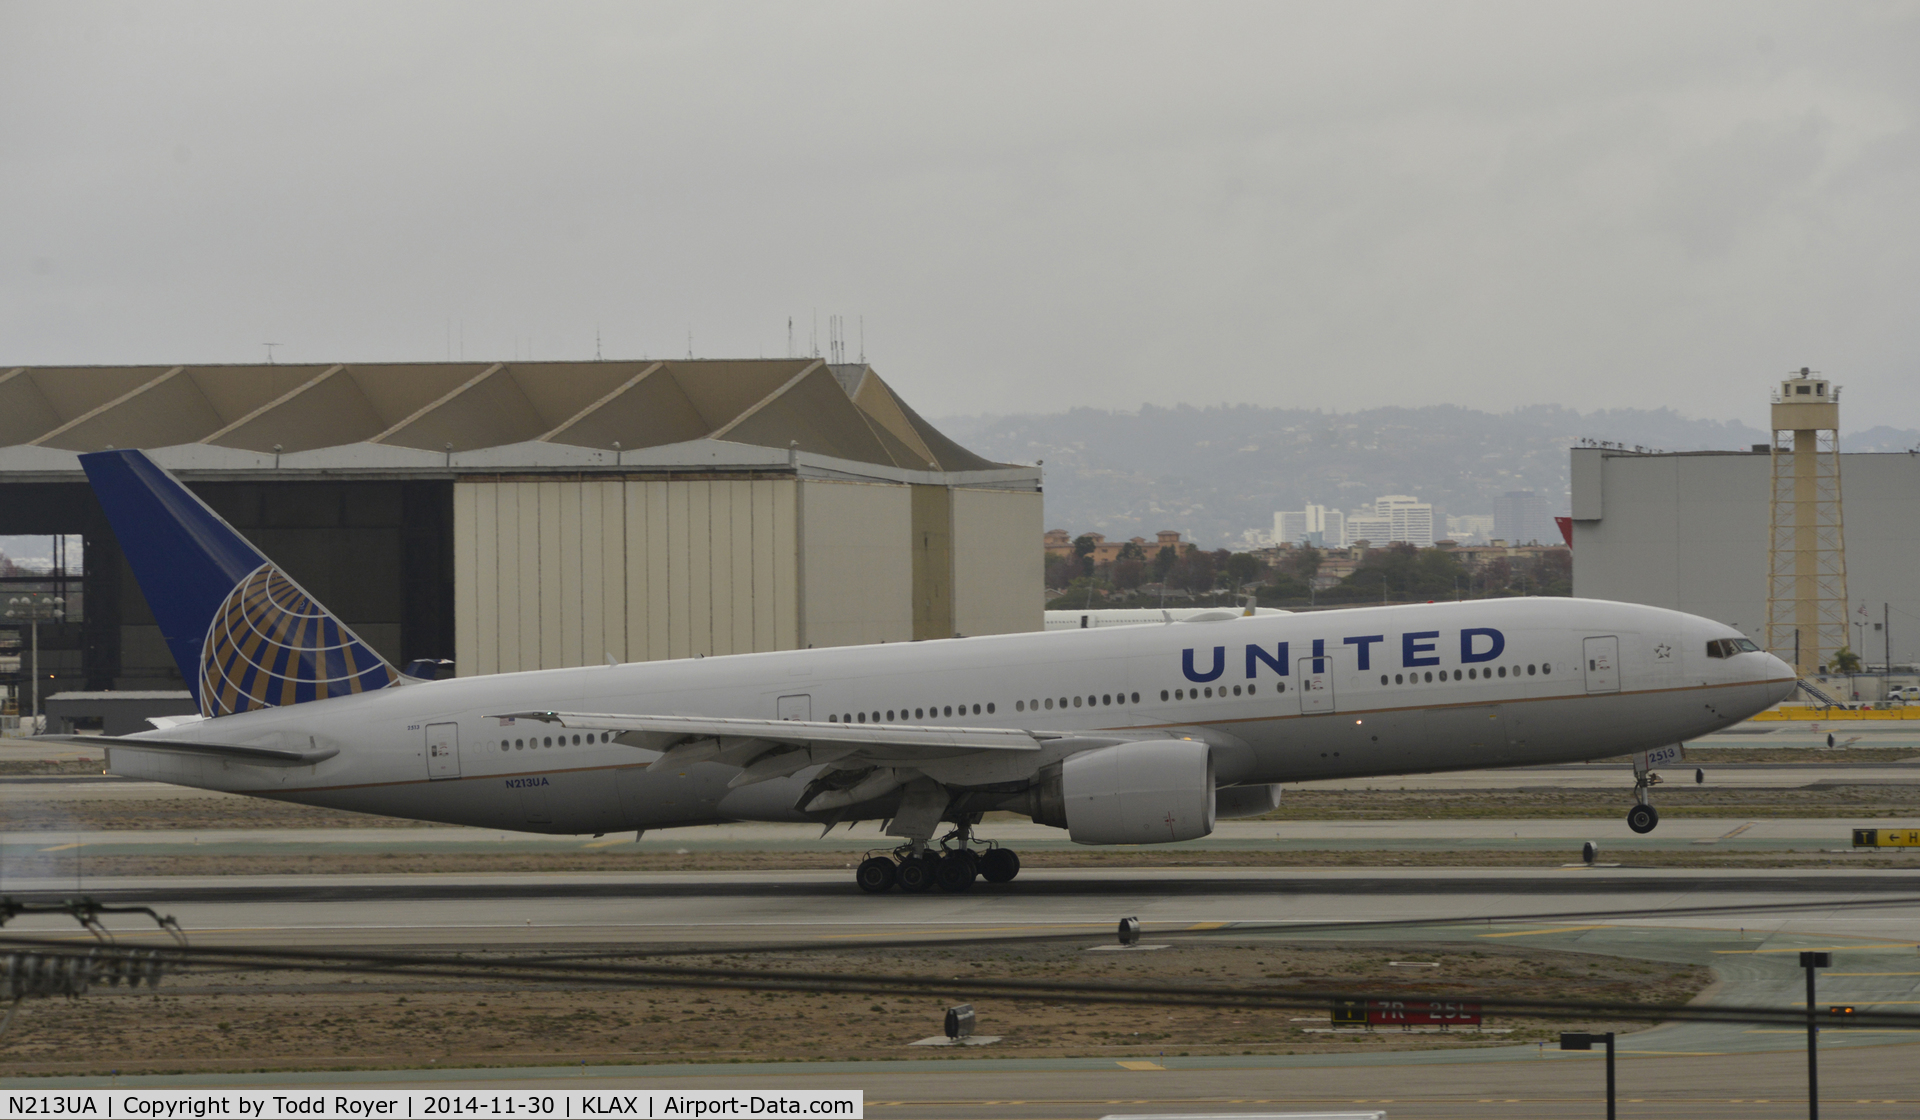 N213UA, 2000 Boeing 777-222 C/N 30219, Landing at LAX on 7R